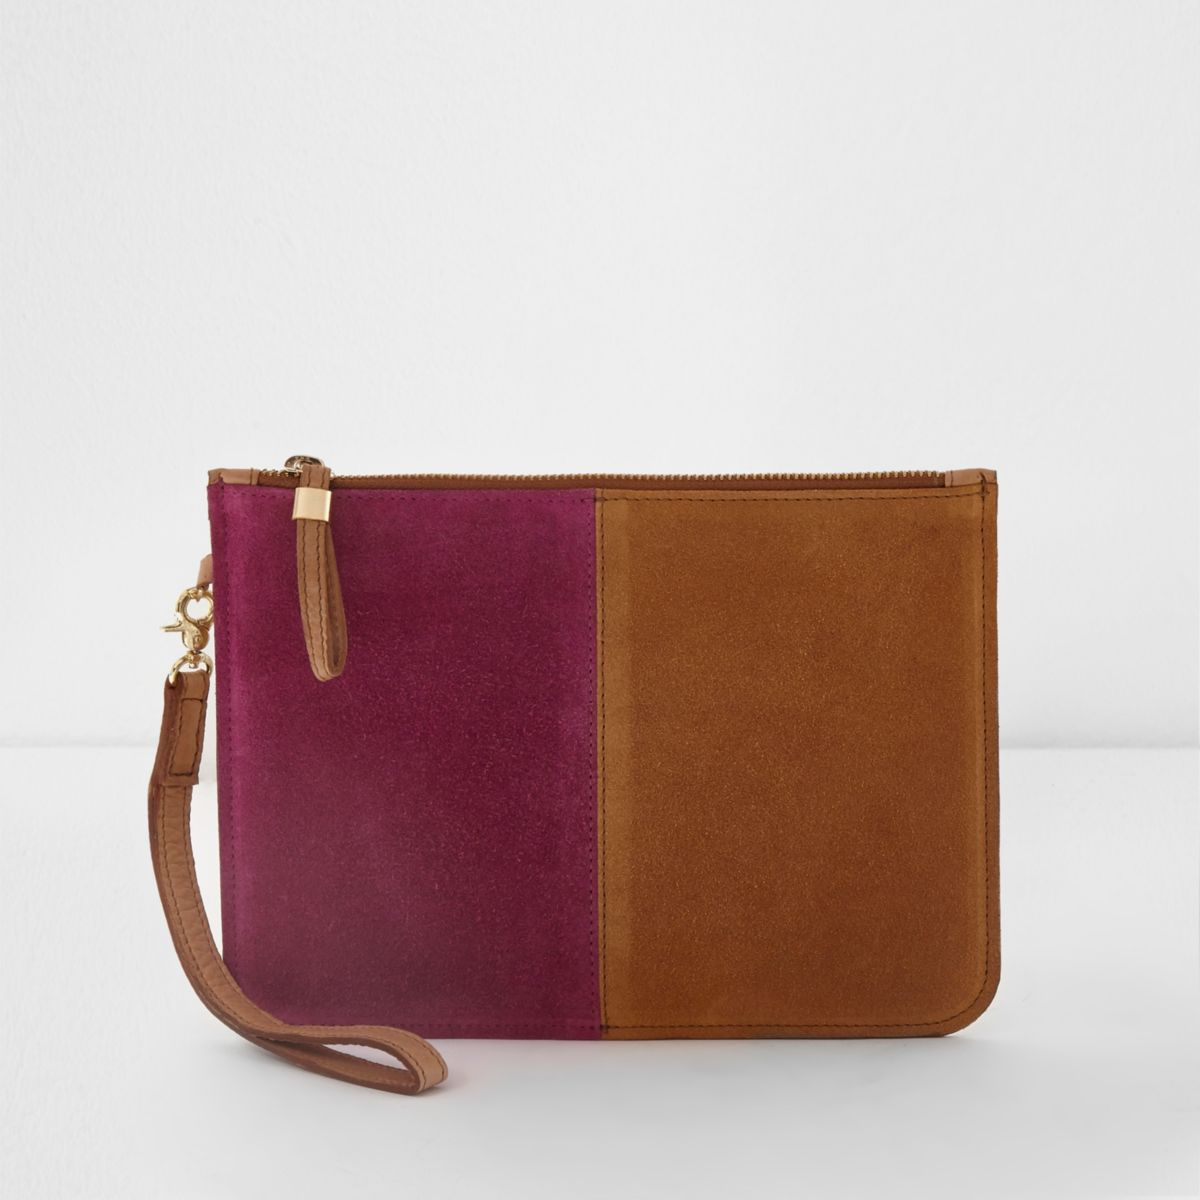 Pink and tan suede small pouch clutch bag